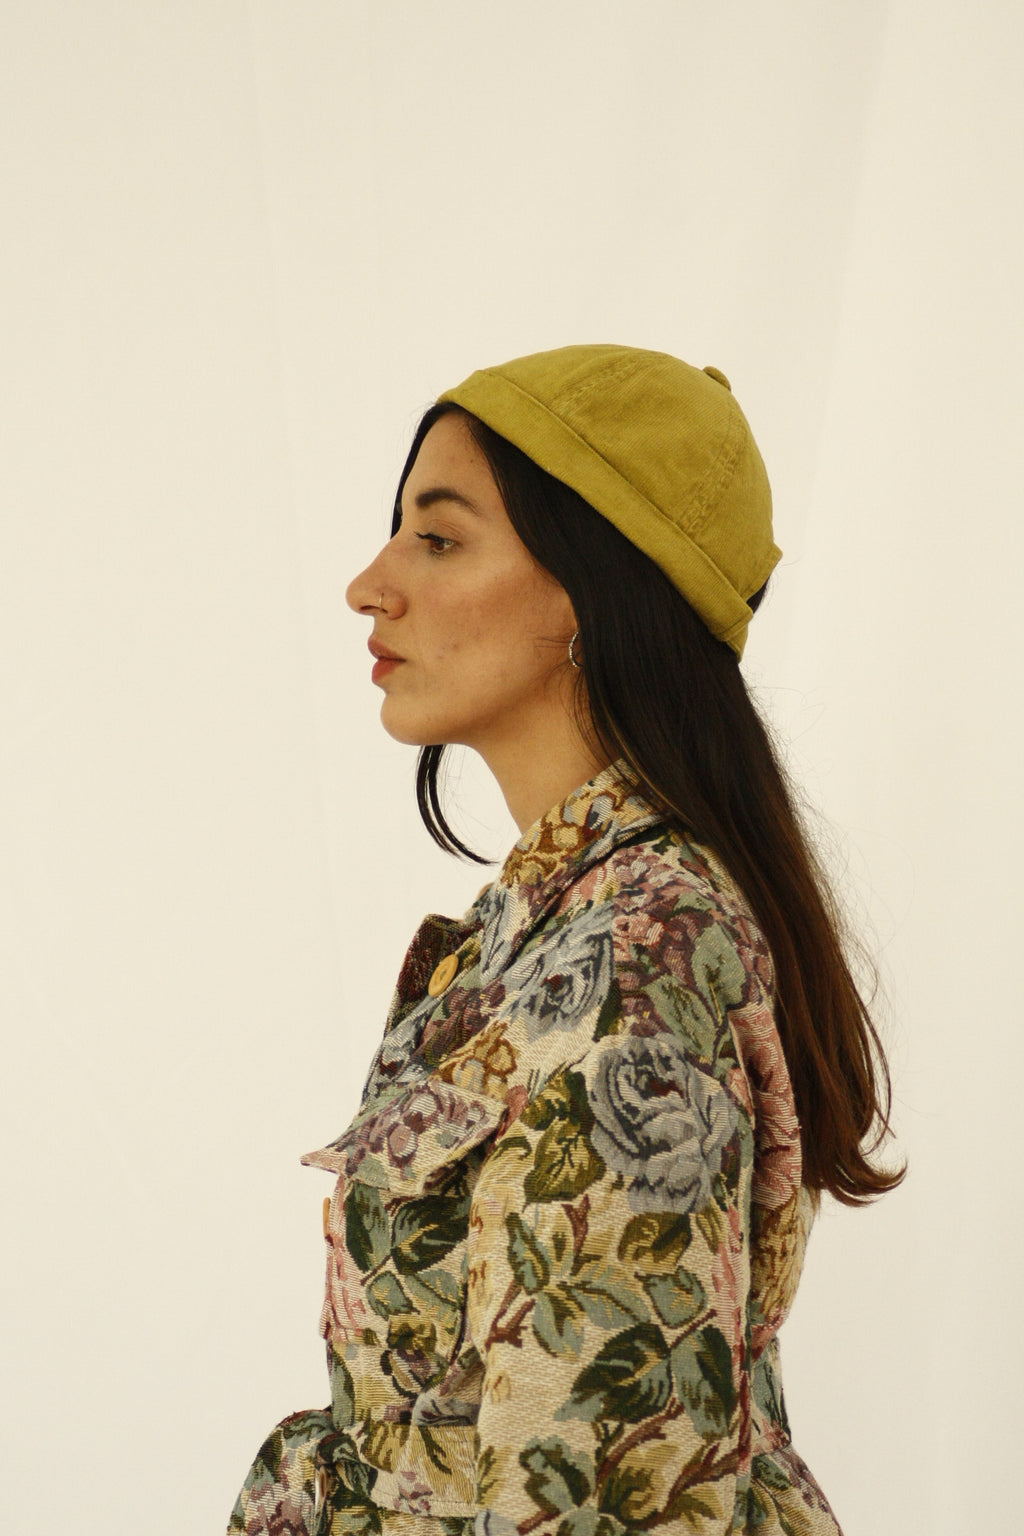 The design of this beanie was inspired by the street style, art and architecture of Japan. Beanie made with leftover green corduroy fabric from our previous collections. INGREDIENTS 100% cotton corduroy Unisex Ethically made in Ecuador. Sustainable fashion, handmade, natural fibers, vintage textiles and upcycled materials.